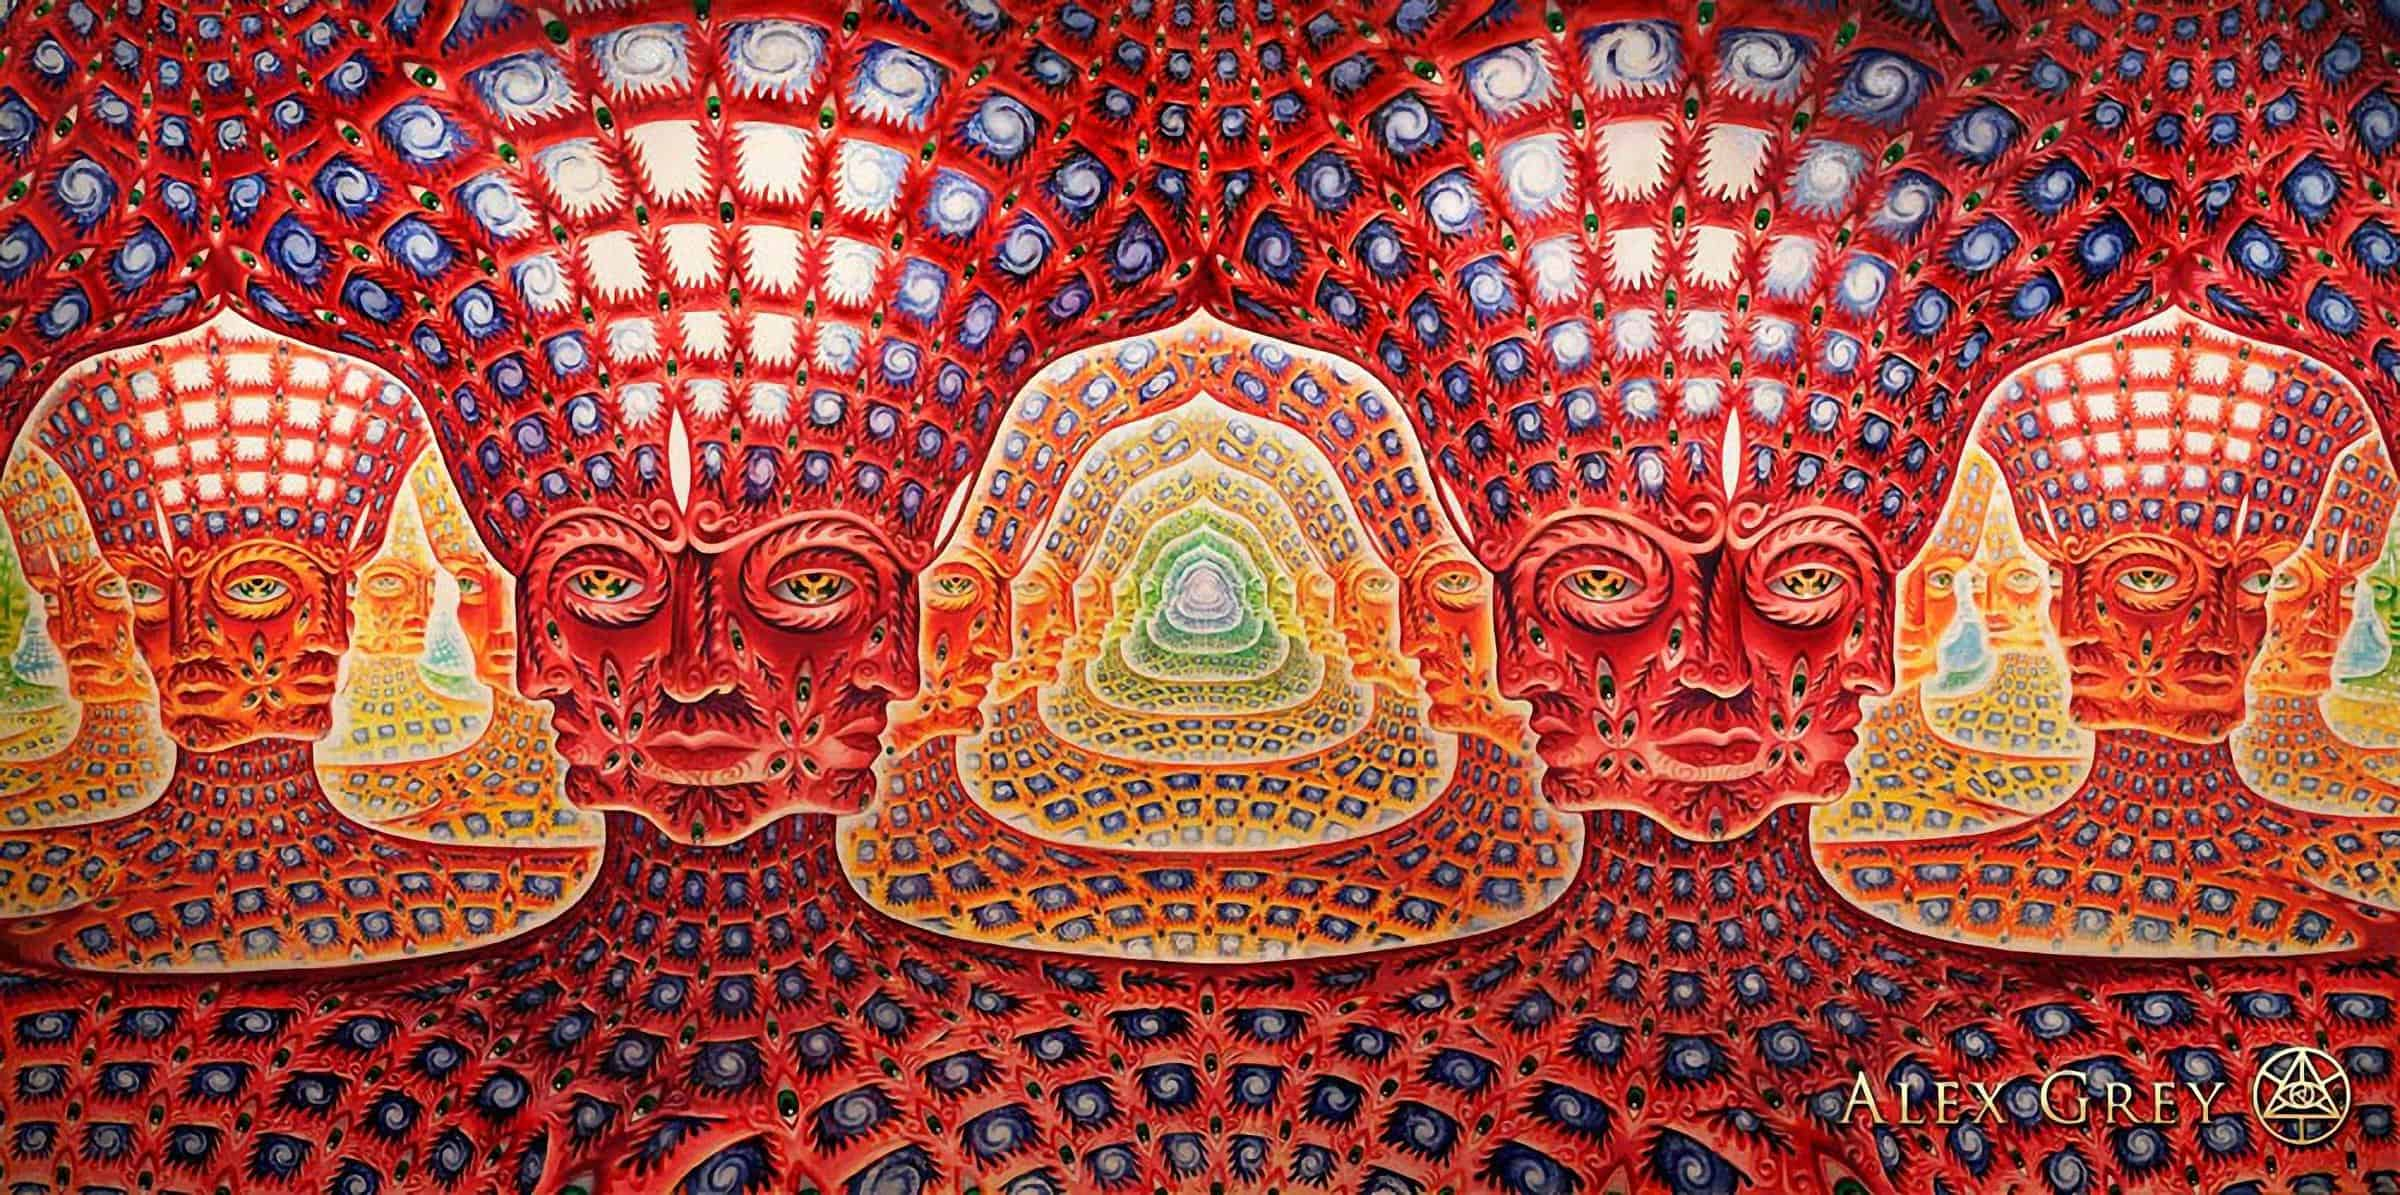 Net of Being 2002-2007 by Alex Grey